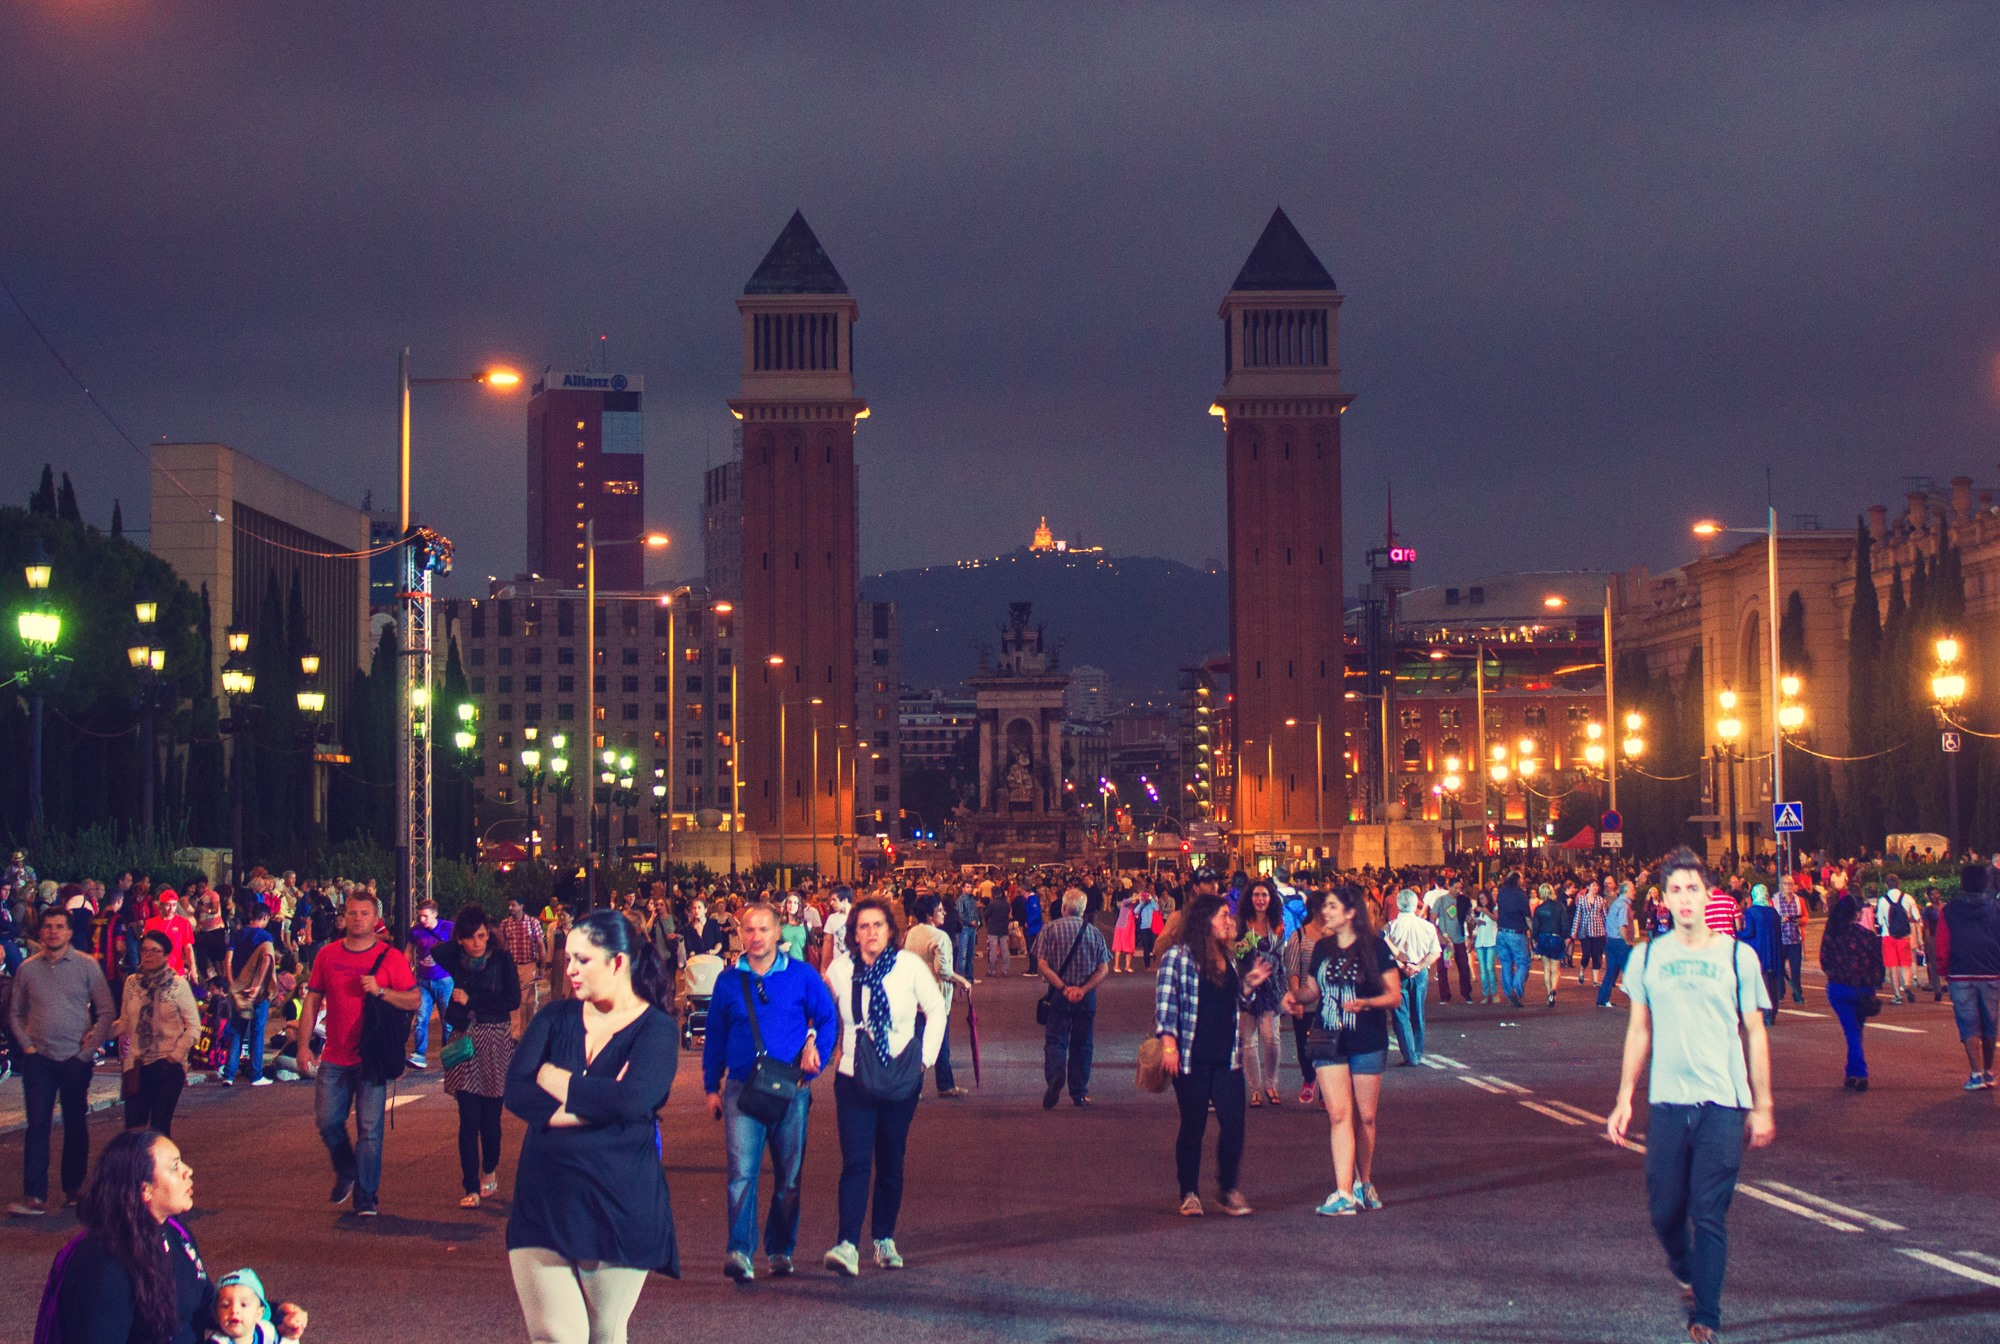 expats living in Barcelona, Spain are ranked the happiest in the world